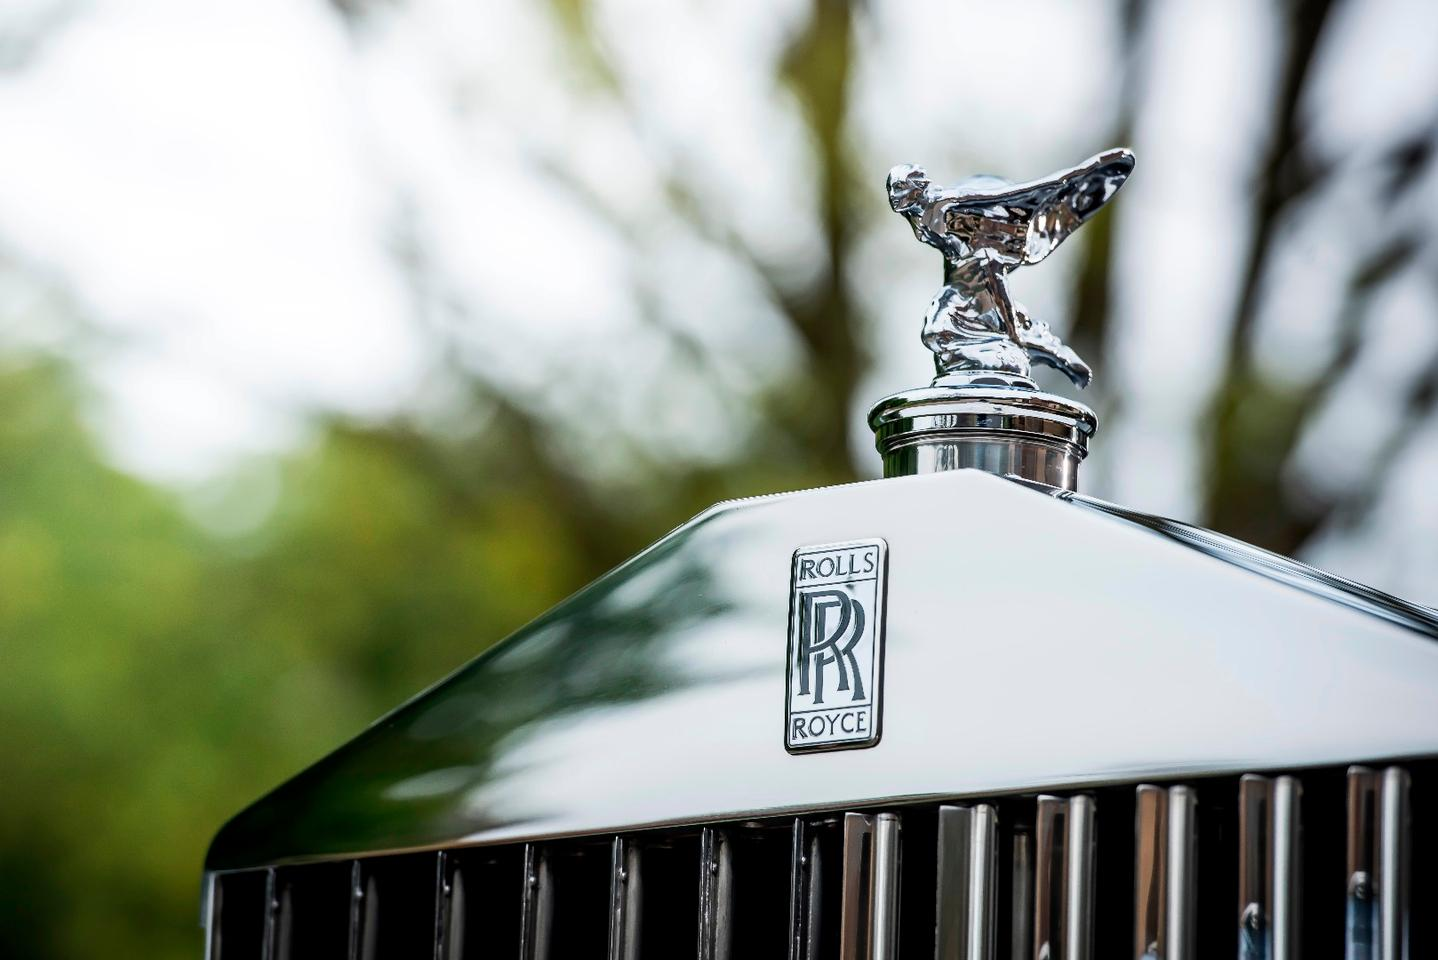 The one thing linking all Rolls-Royce cars is the Spirit of Ecstasy on the hood